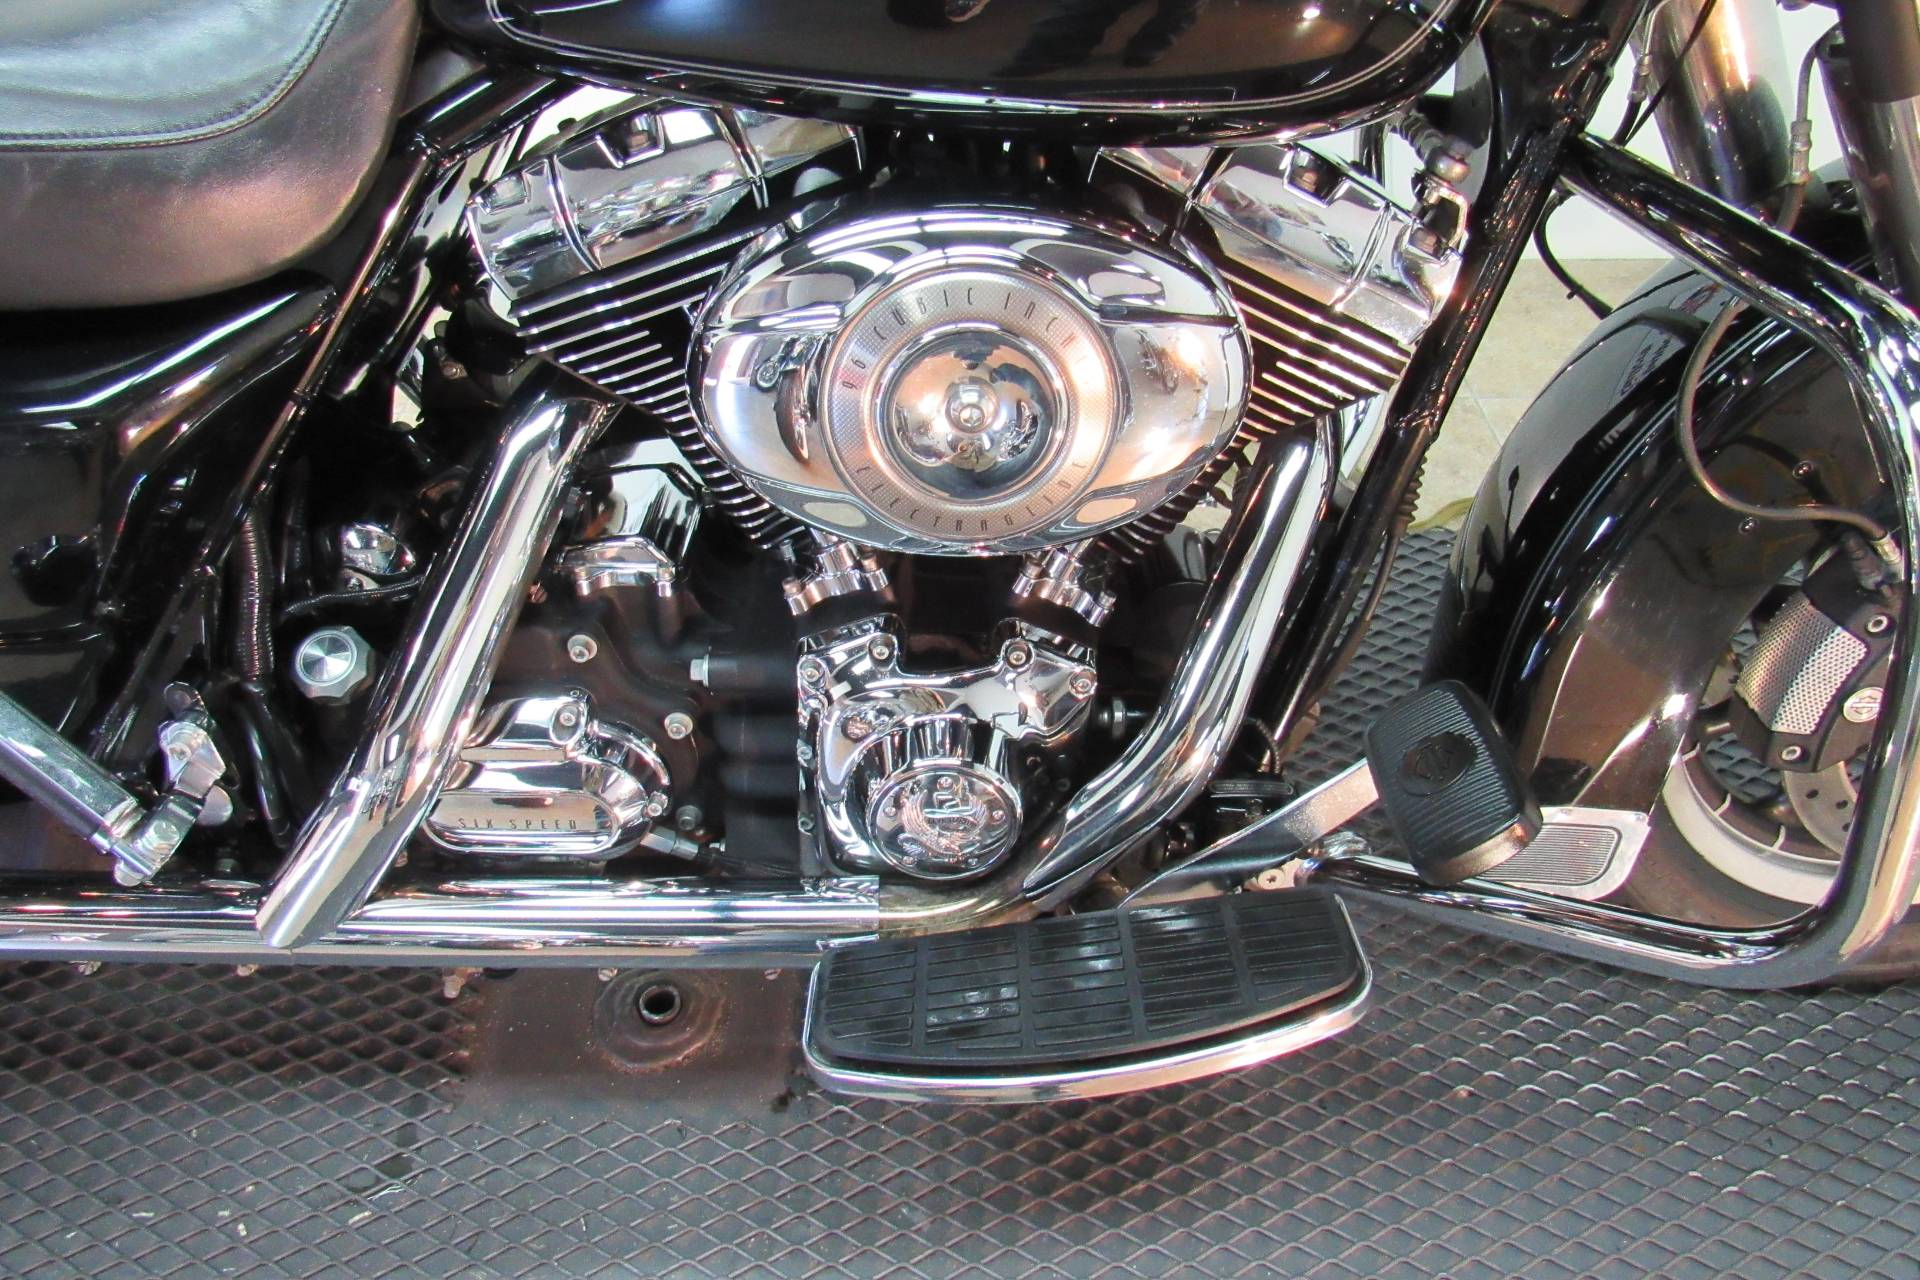 2008 Harley-Davidson Electra Glide® Classic in Temecula, California - Photo 5